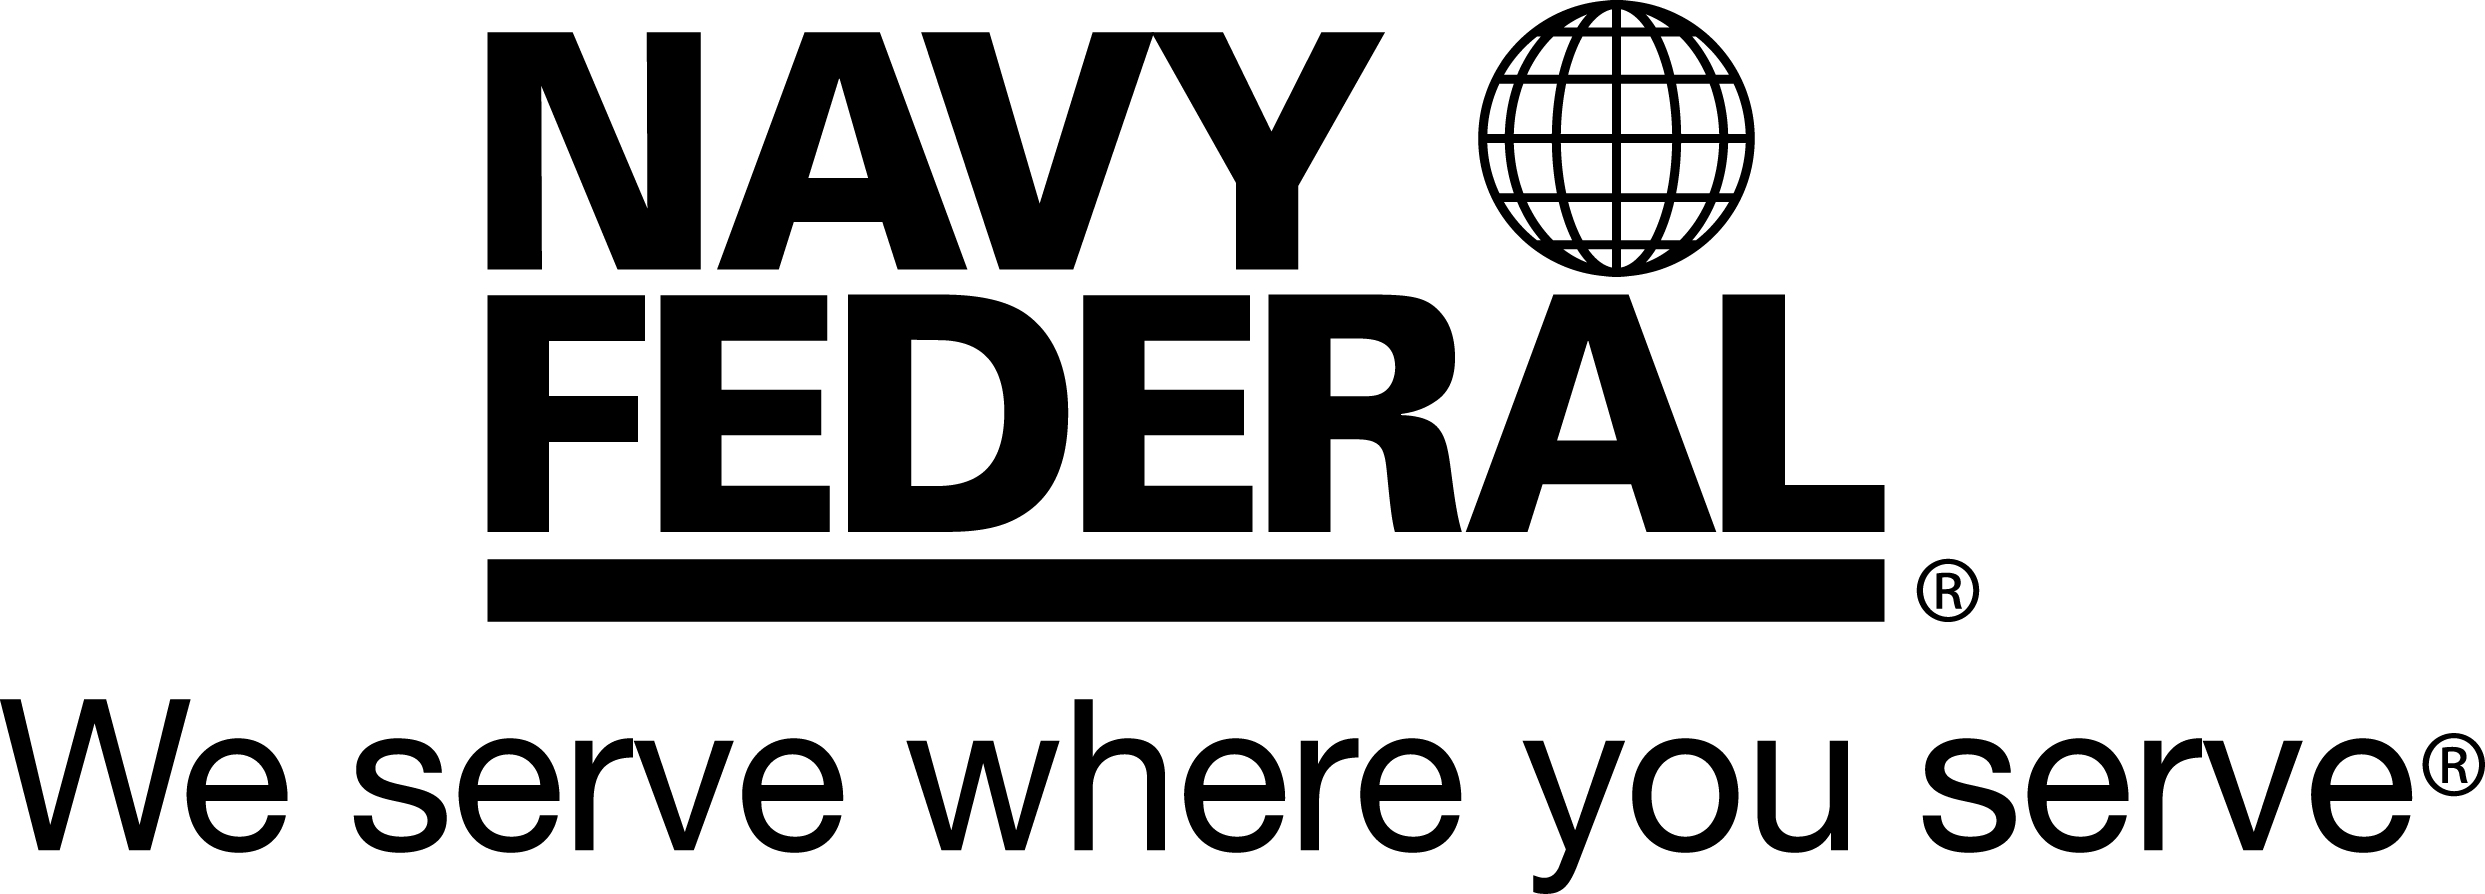 wiring money navy federal